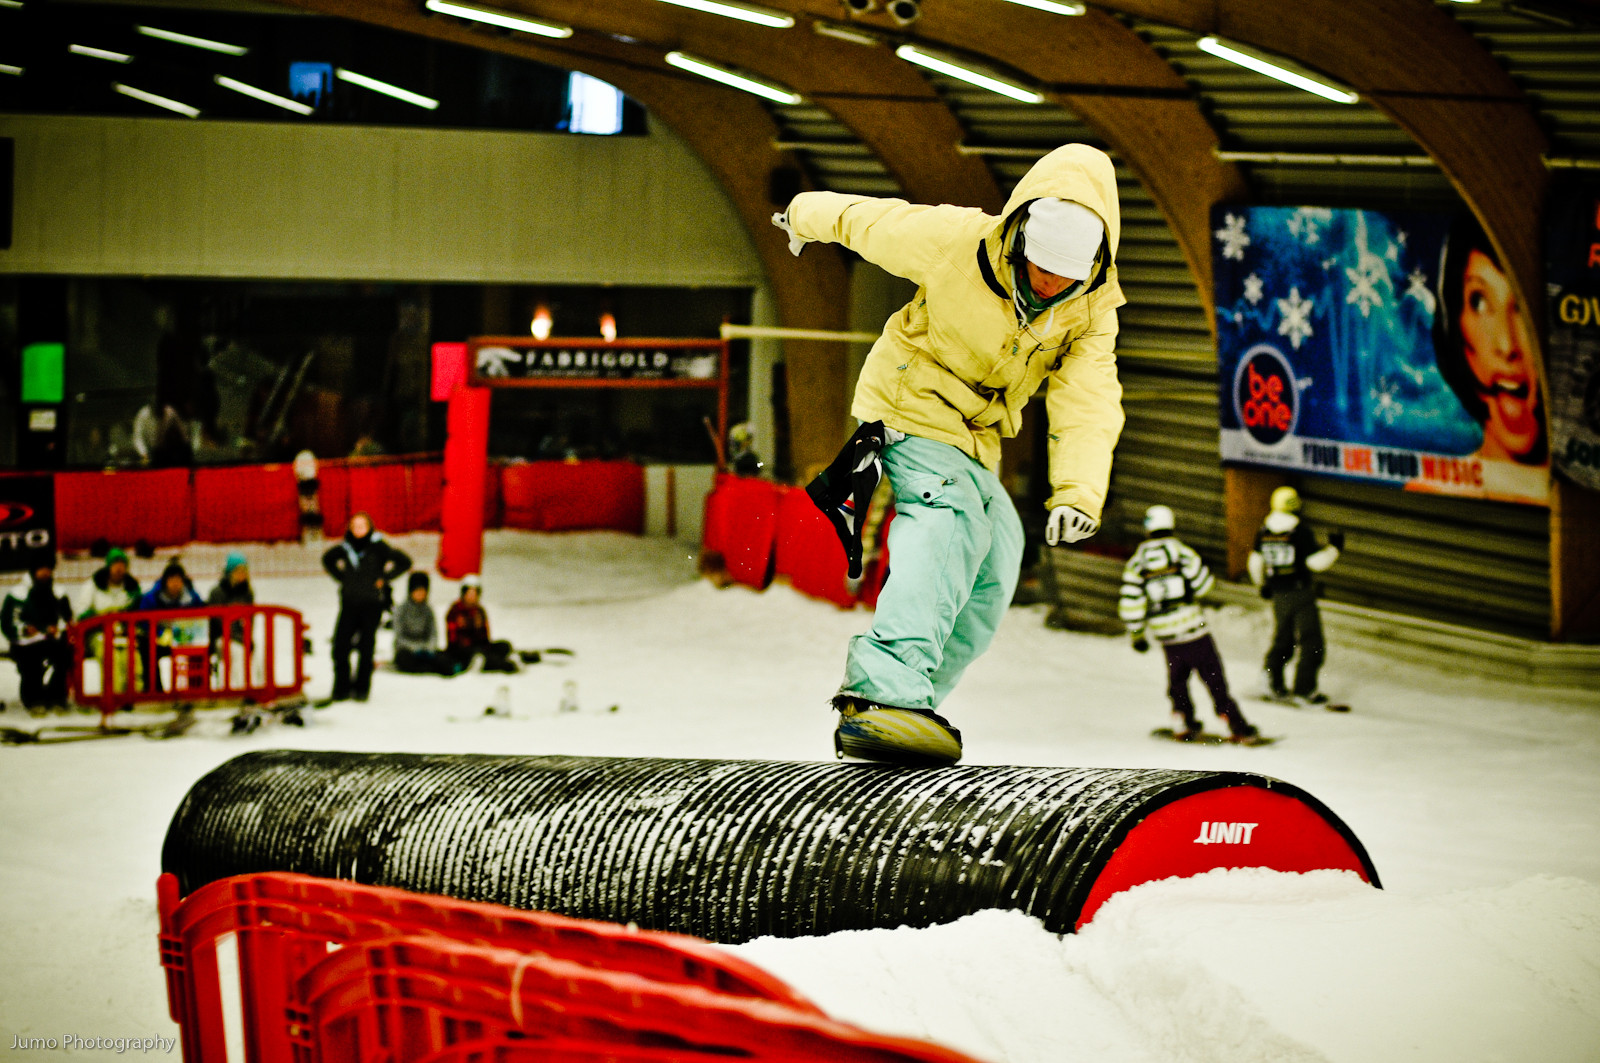 Freestyle snowboarder at Ice Mountainundefined